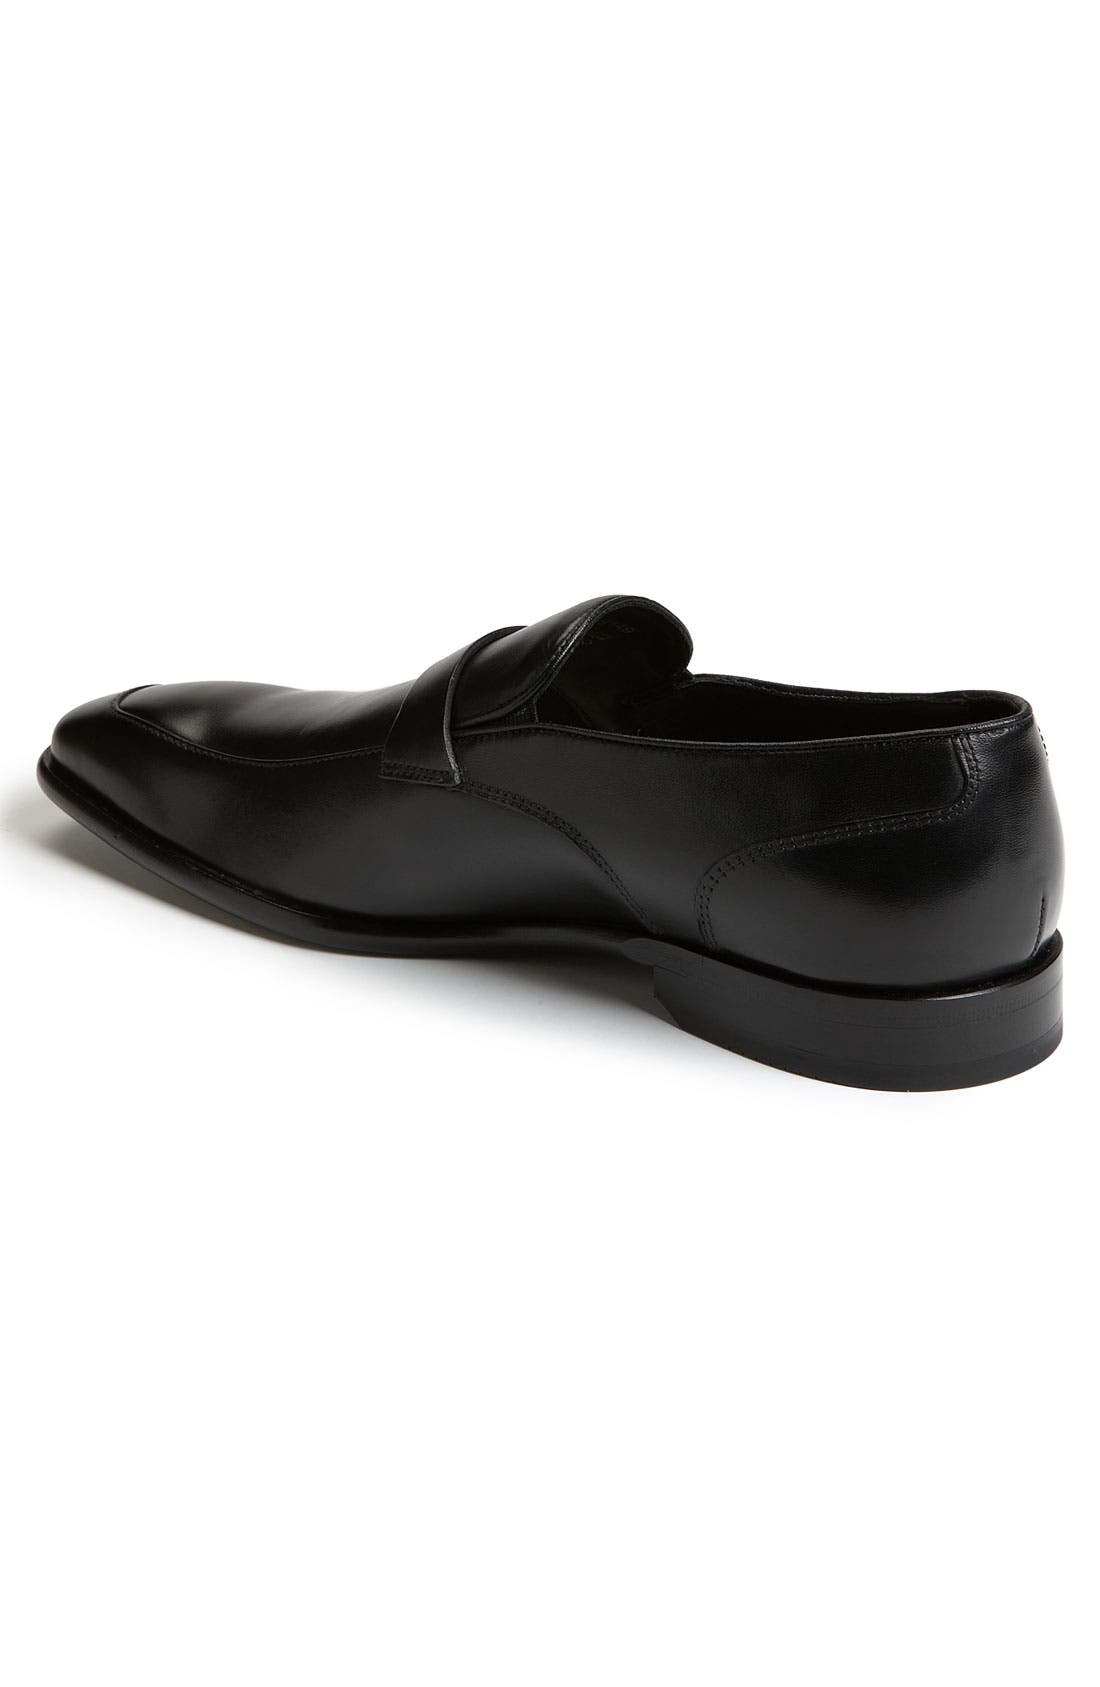 Alternate Image 2  - BOSS HUGO BOSS 'Metero' Loafer (Men)